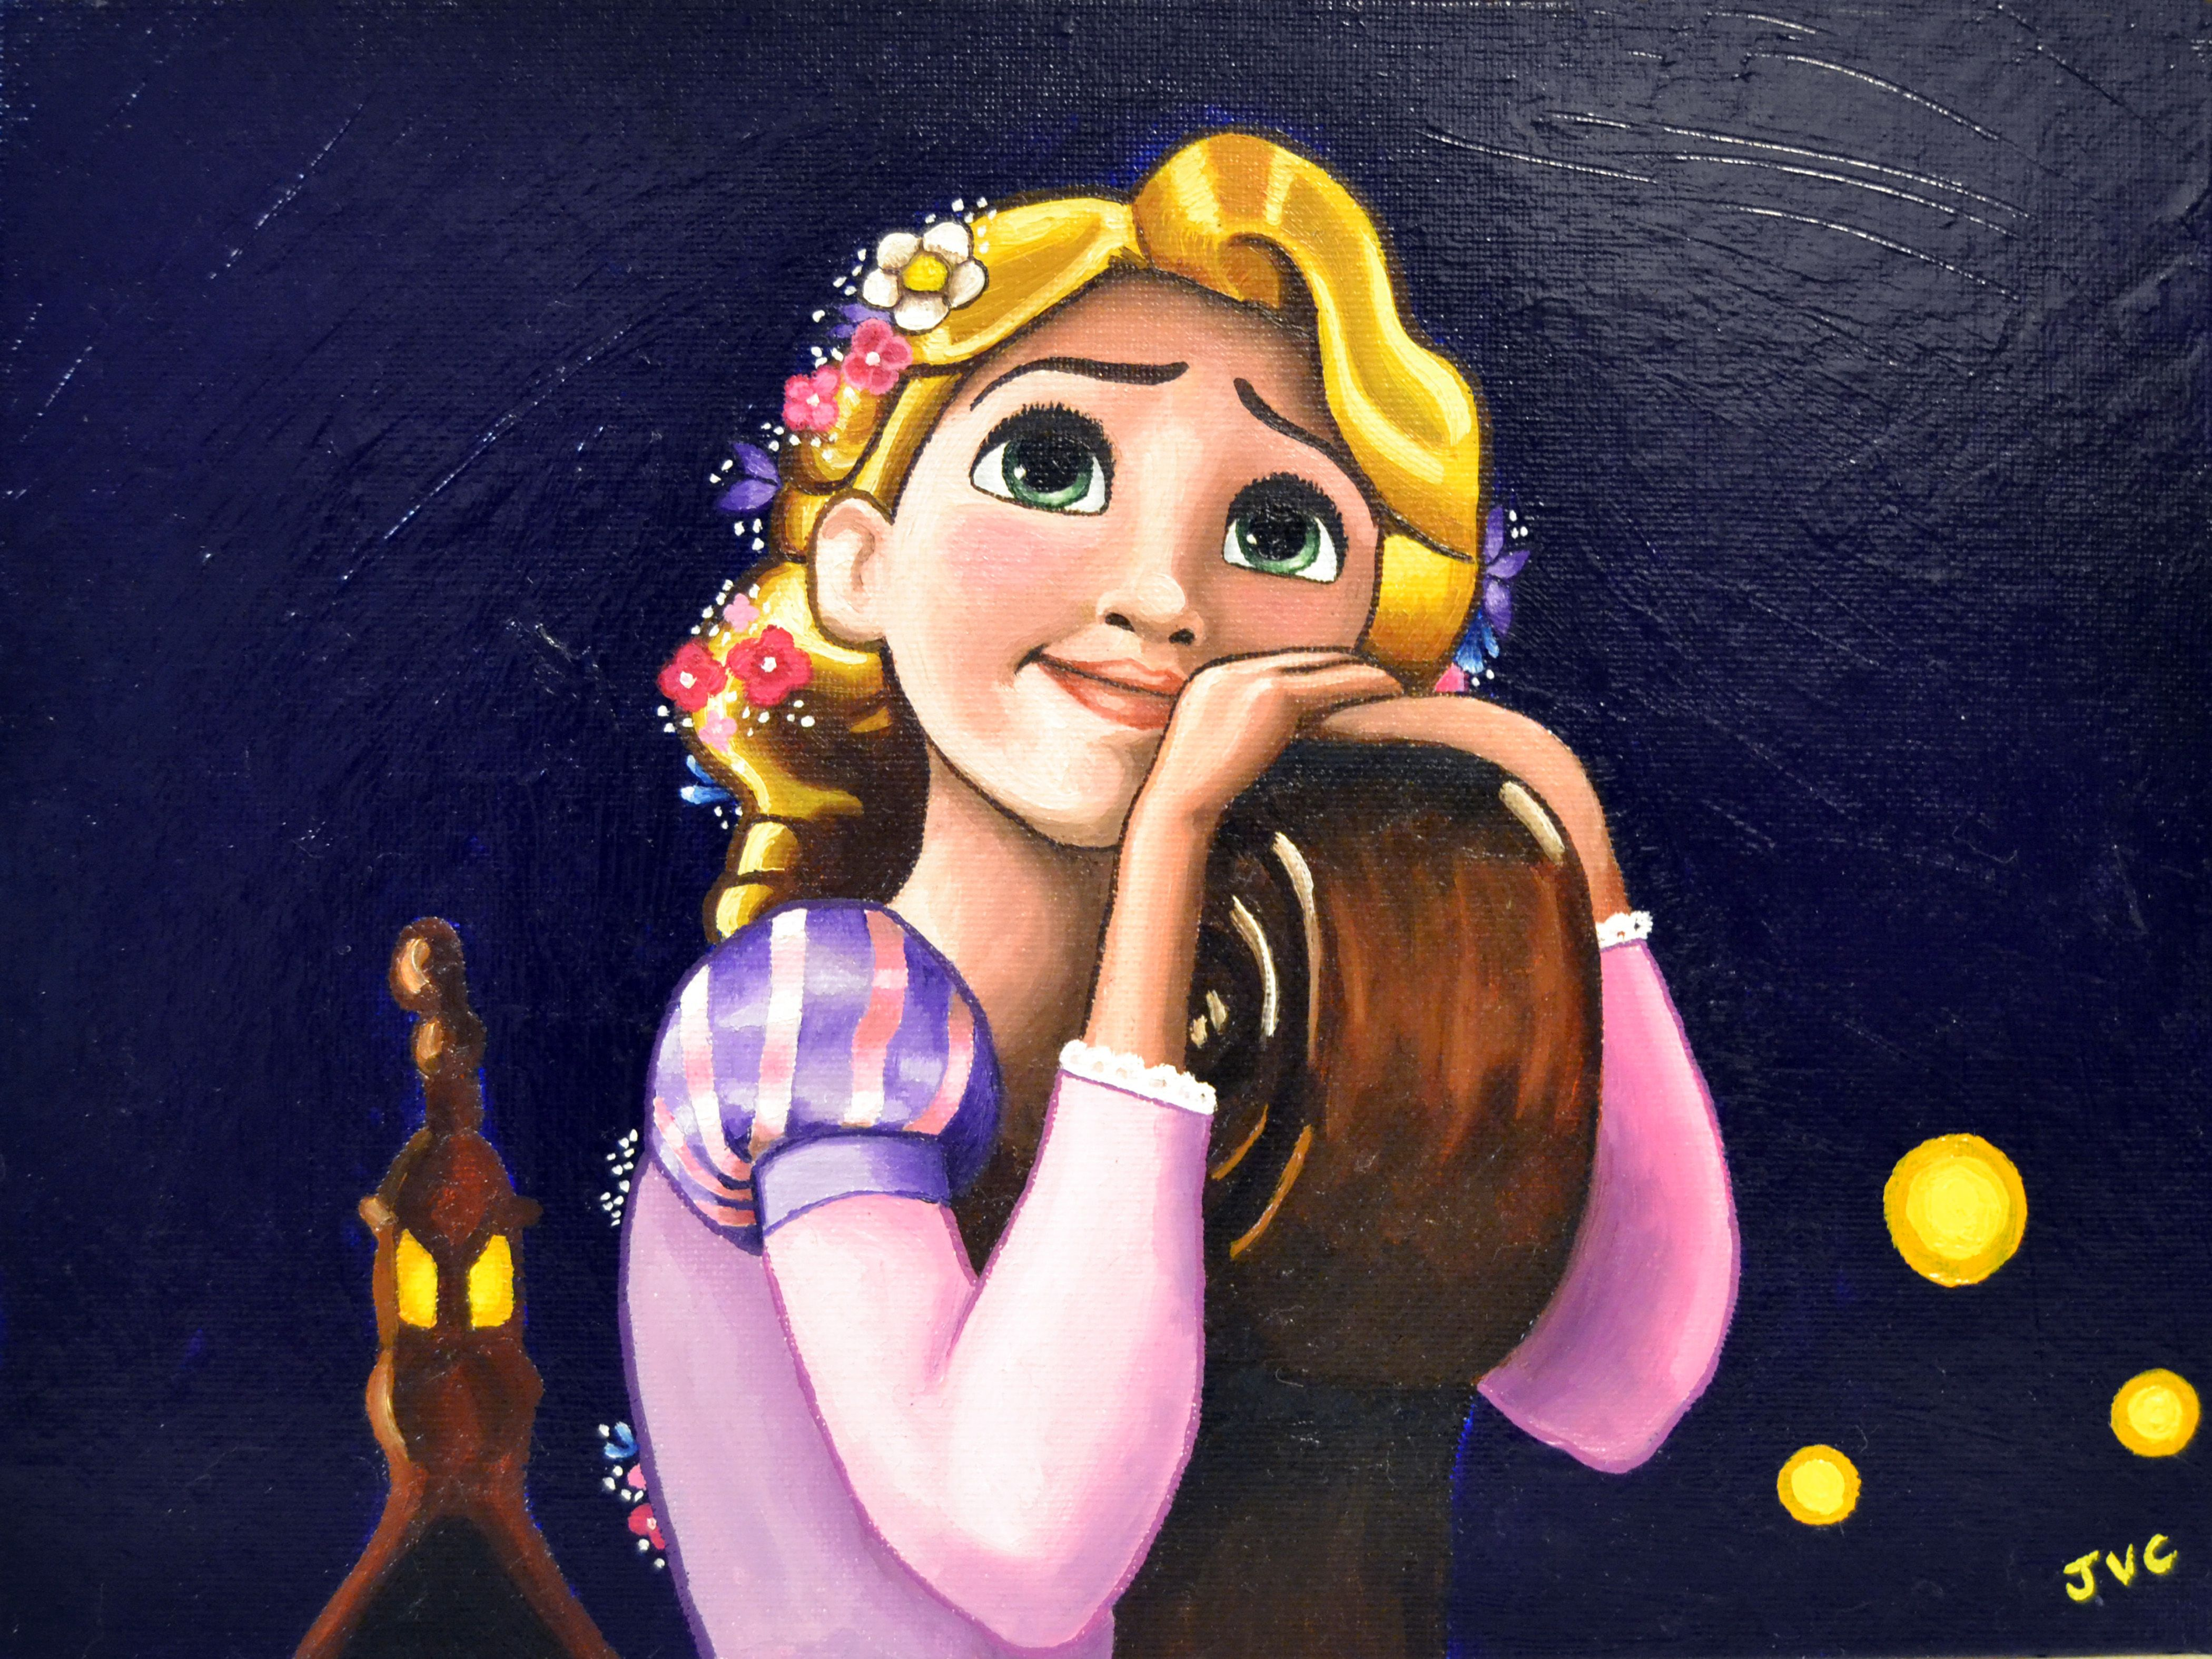 tangled painting oil on canvas rapunzel disney